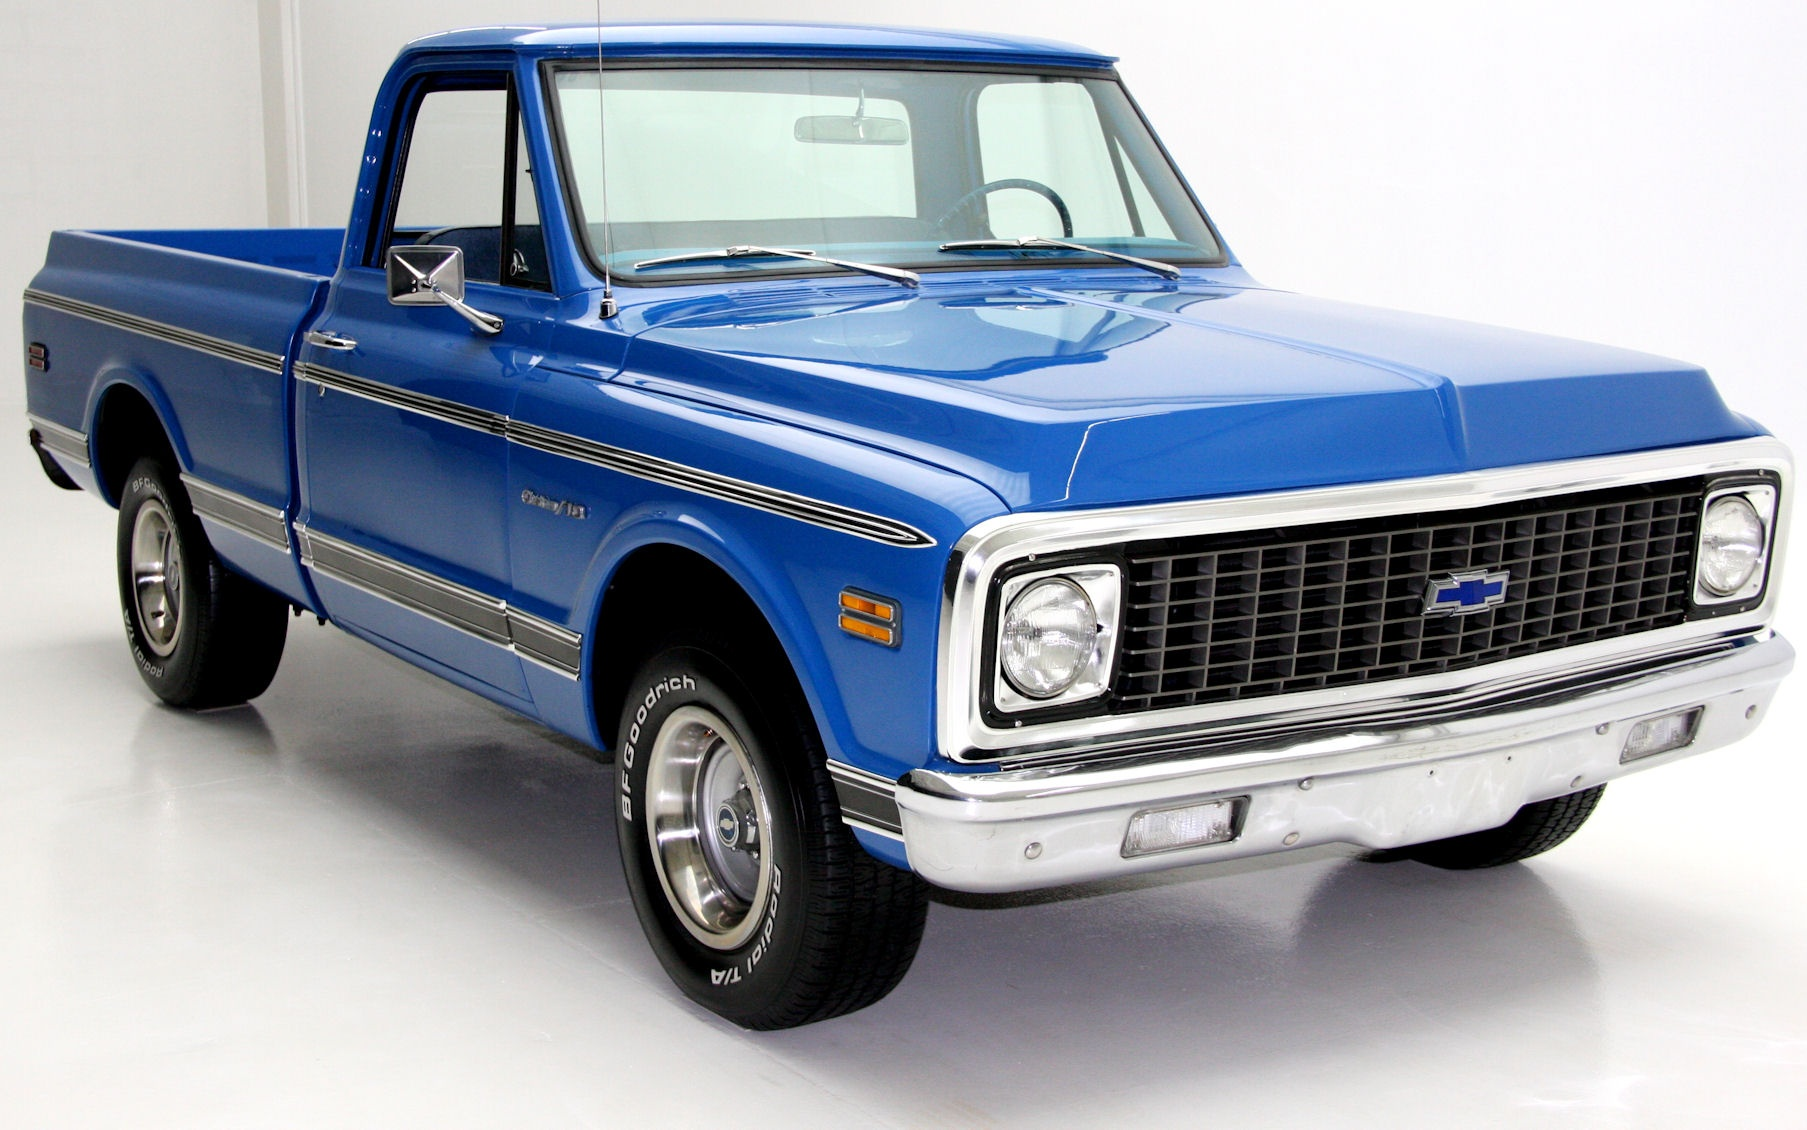 1971 Chevrolet C10 Pickup Short Box 2wd American Dream